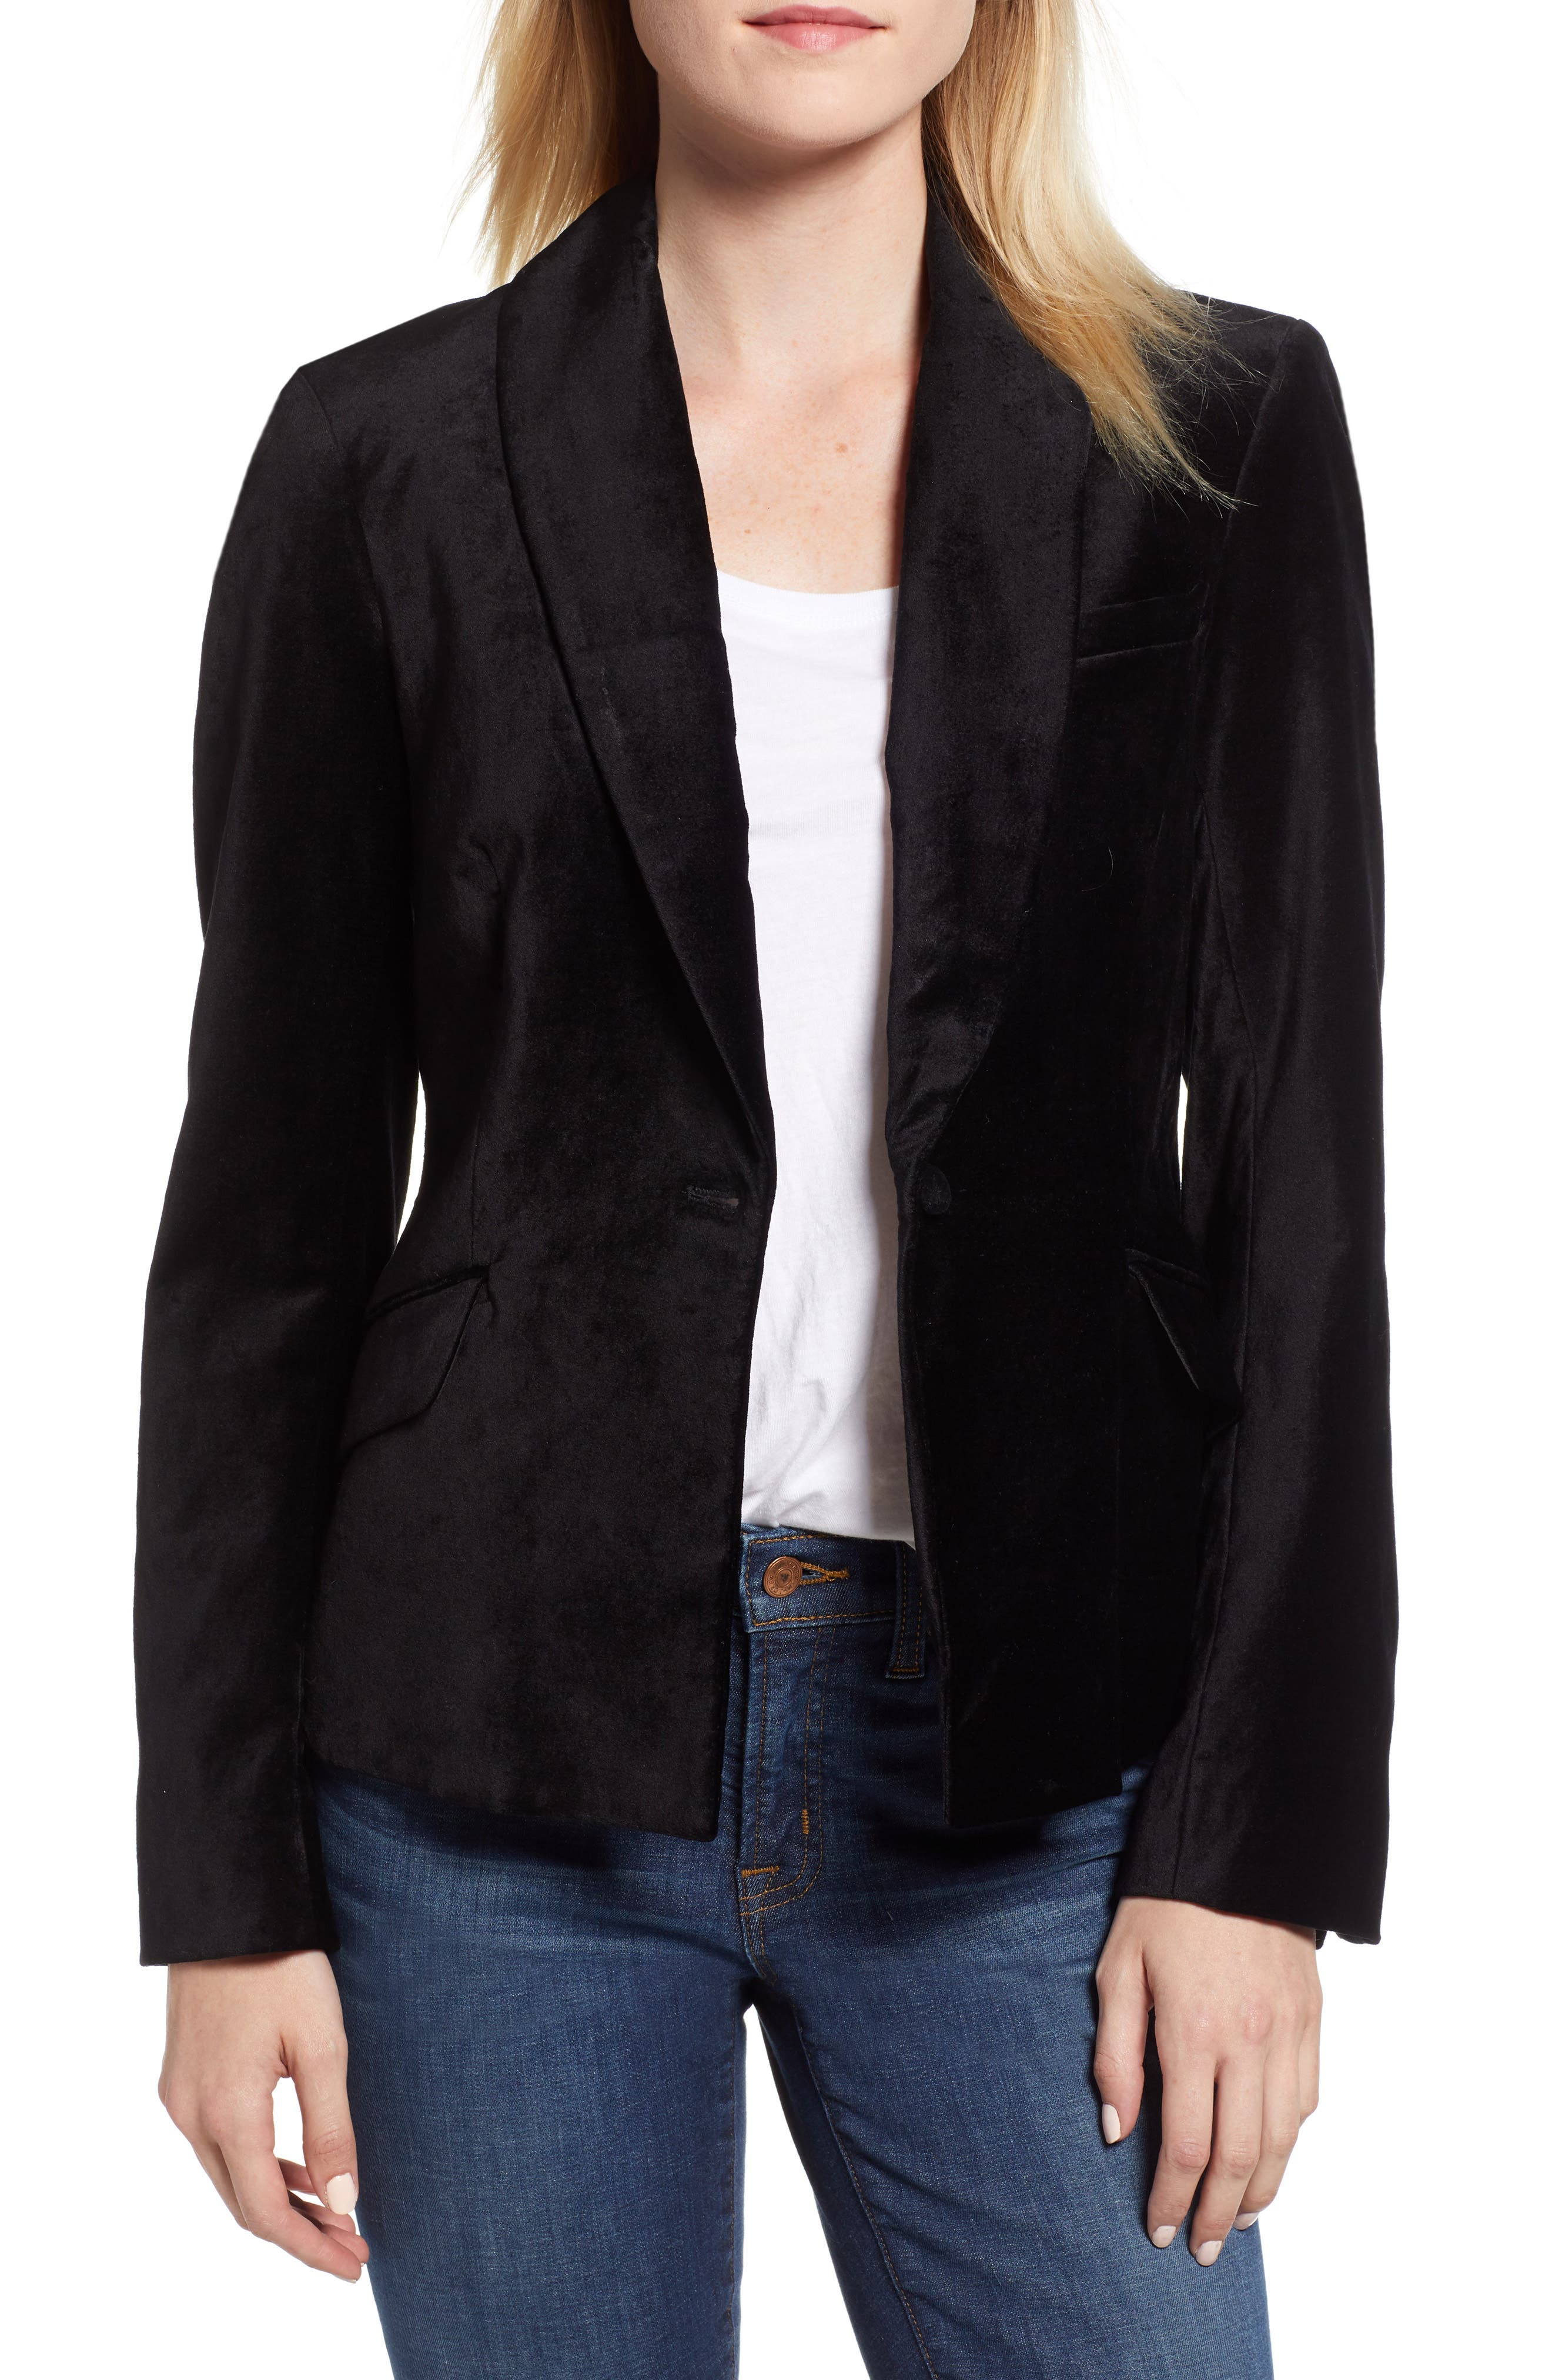 JEN7 BY 7 FOR ALL MANKIND, Stretch Cotton Velvet Blazer, Main thumbnail 1, color, BLACK